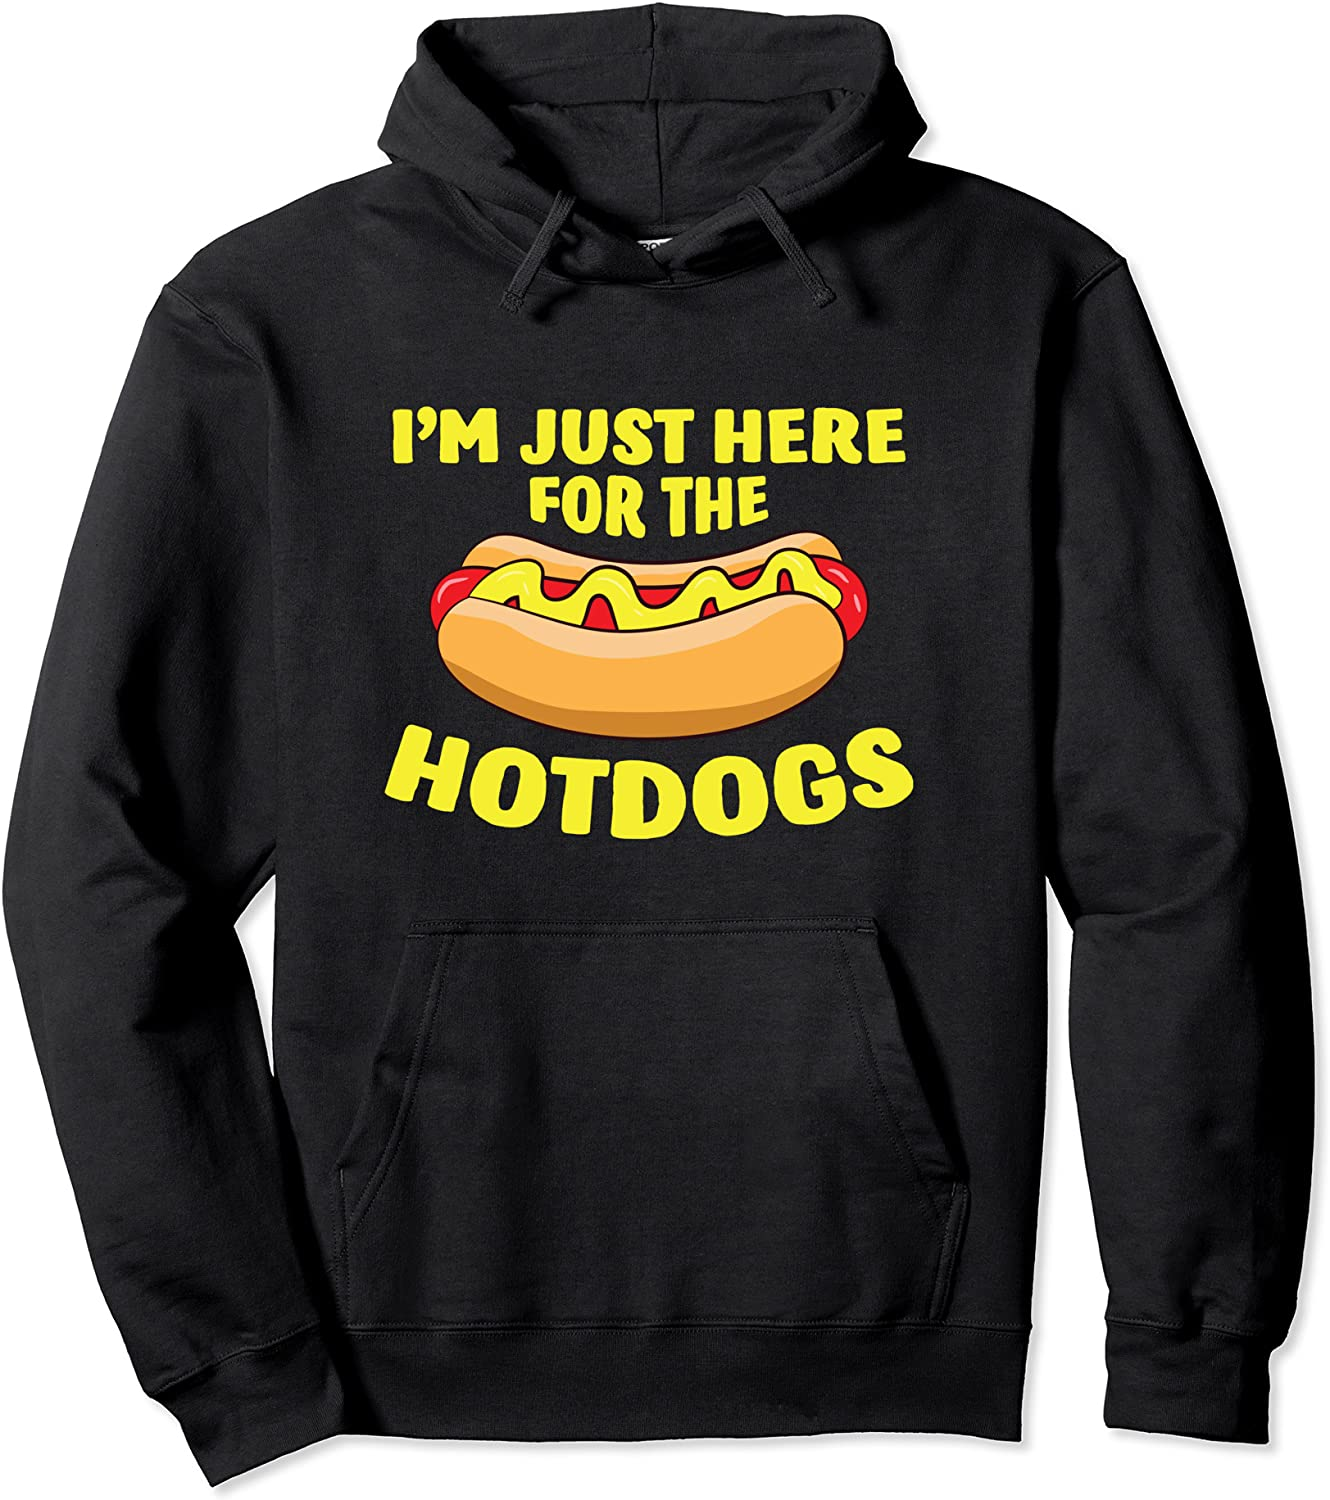 I'm Just Here specialty shop For The Hotdogs Popular standard Hoodie Funny Dog Pullover Hot